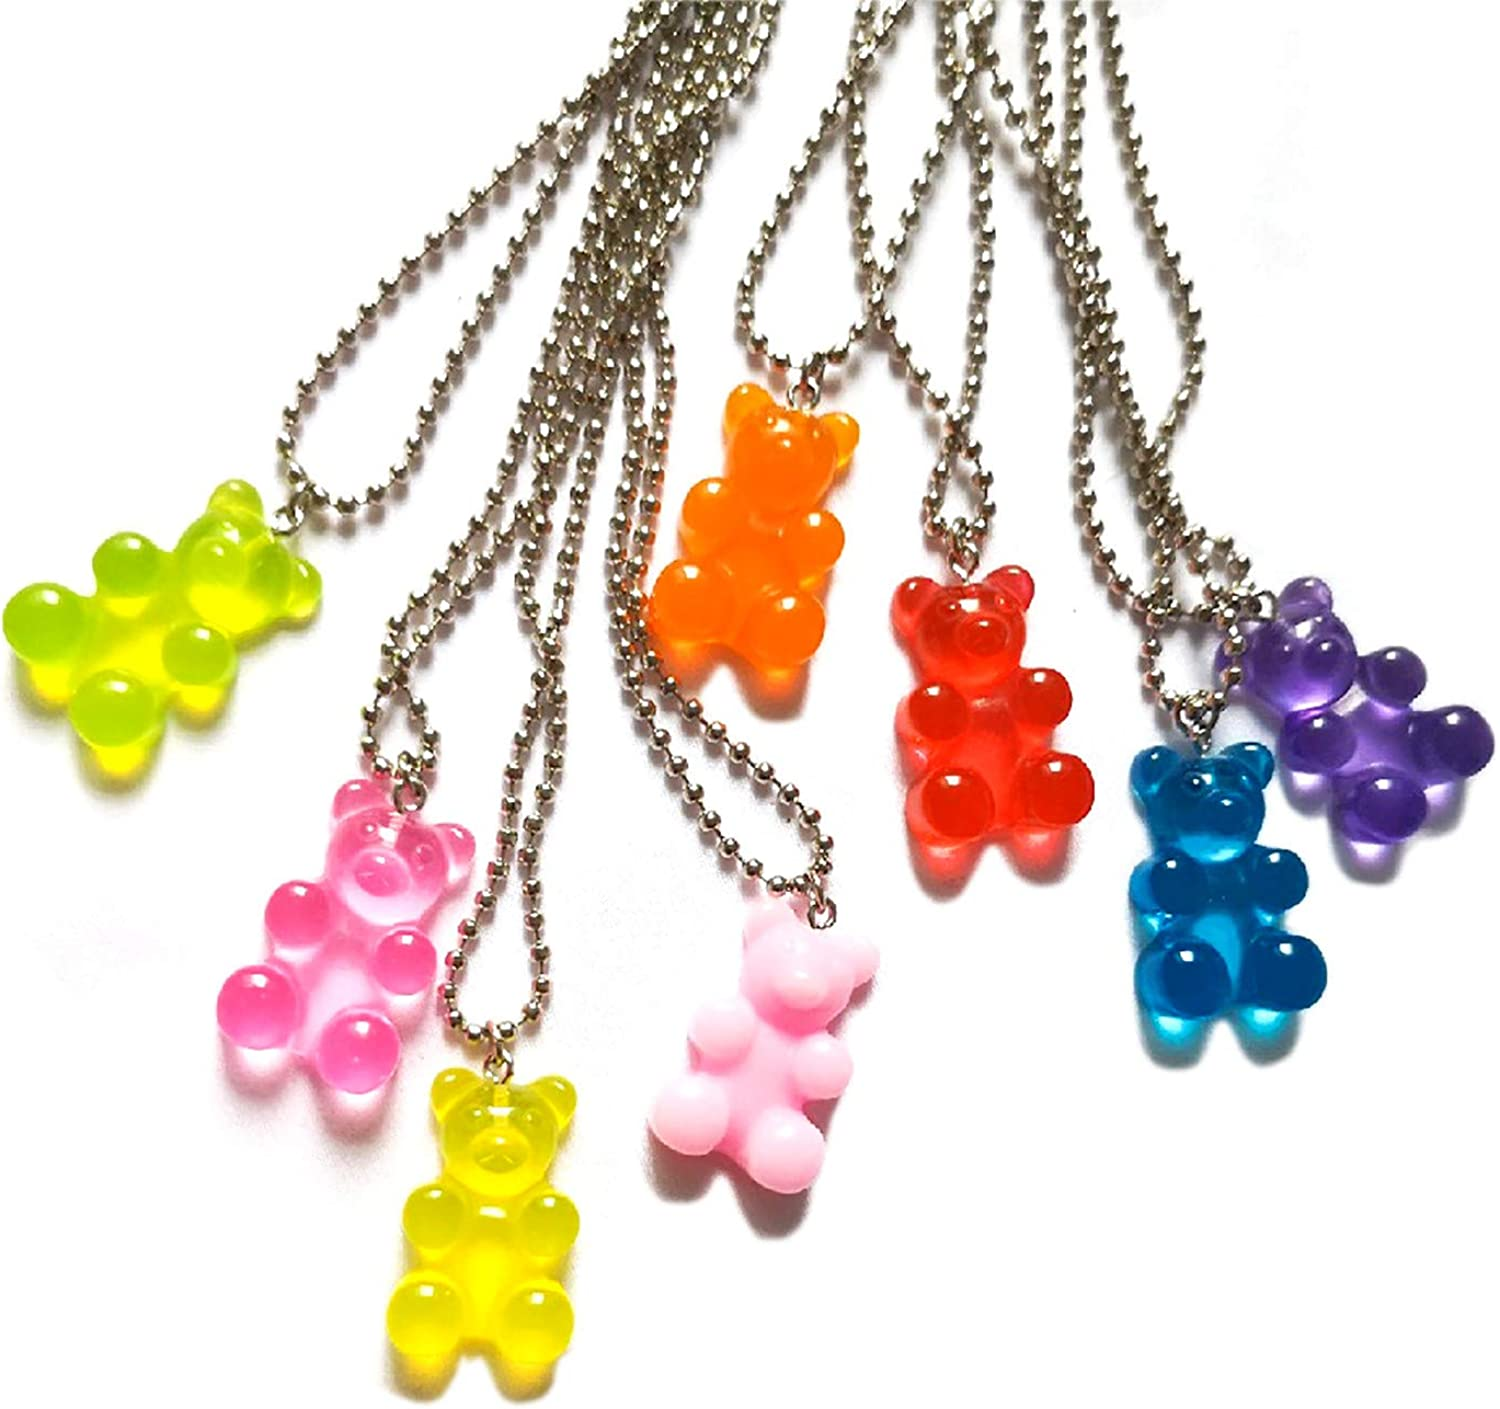 Brand Cheap Sale Venue 6-8Pcs Cute Cool Colorful Resin Gummy Chain Pend Link Soldering Beads Bear